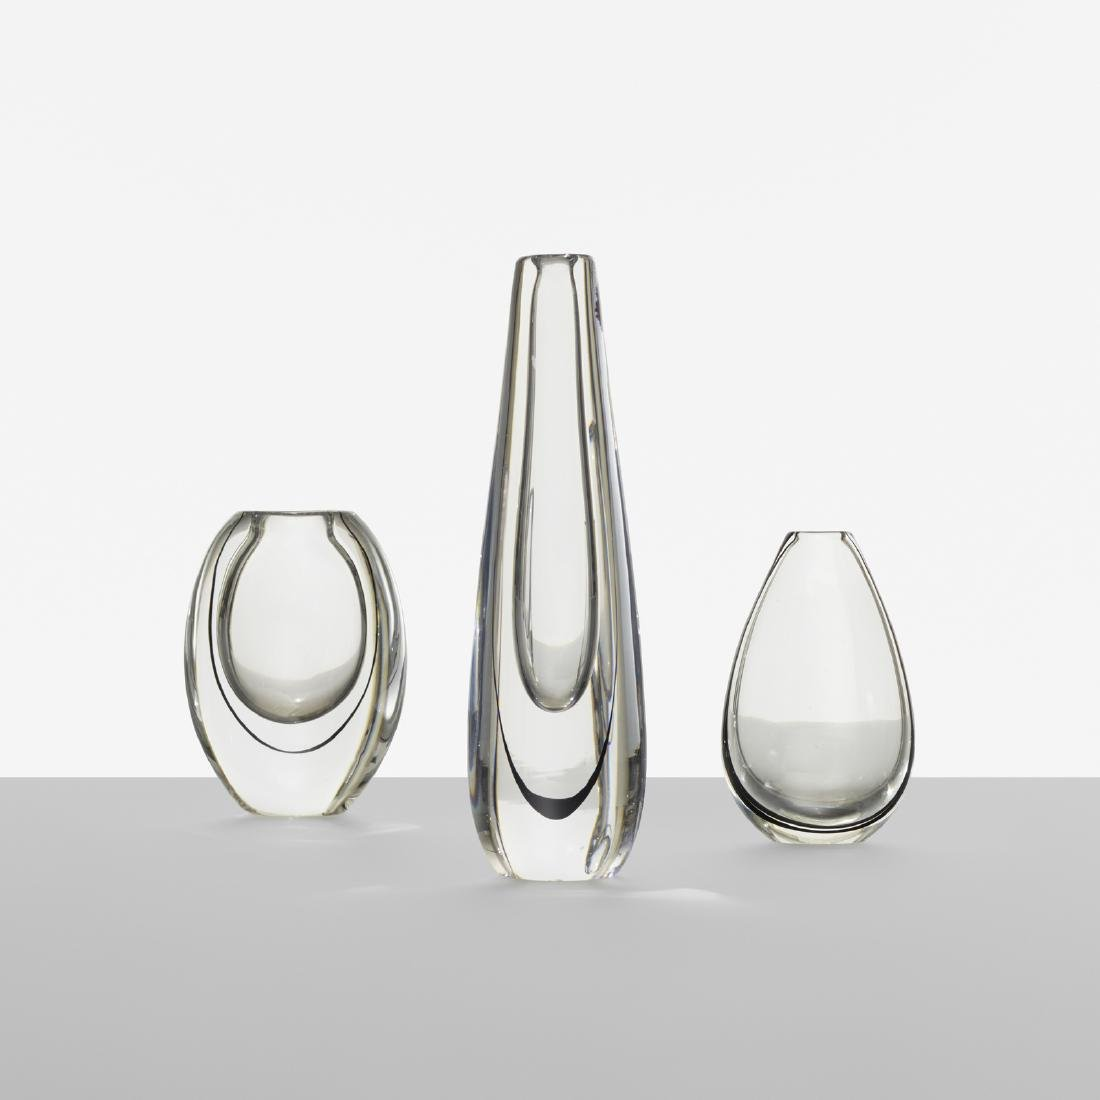 Vicke Lindstrand, collection of three vases